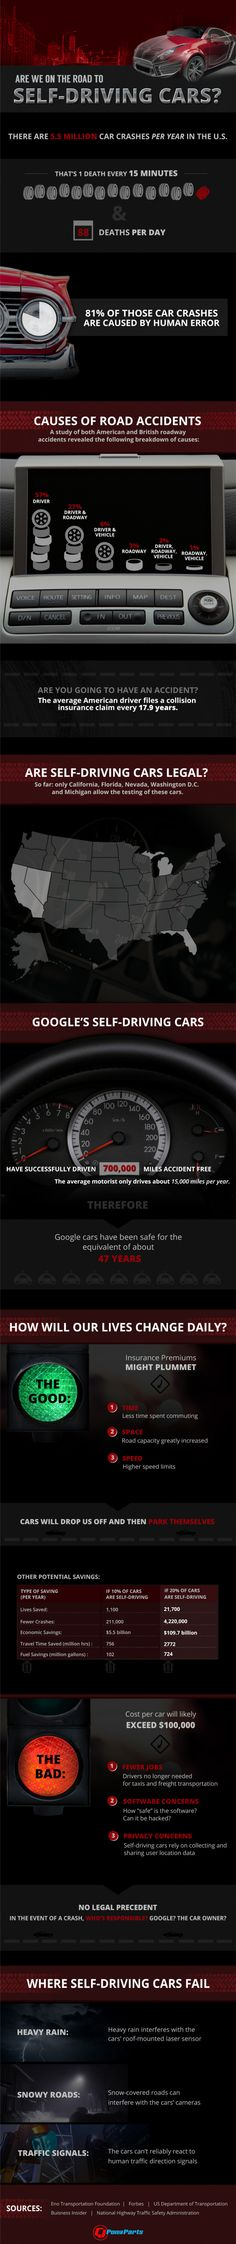 What it can be used for. No More crashes. #NoCrashCars #autonomousvehicles #selfdrivingcar  #moderntech